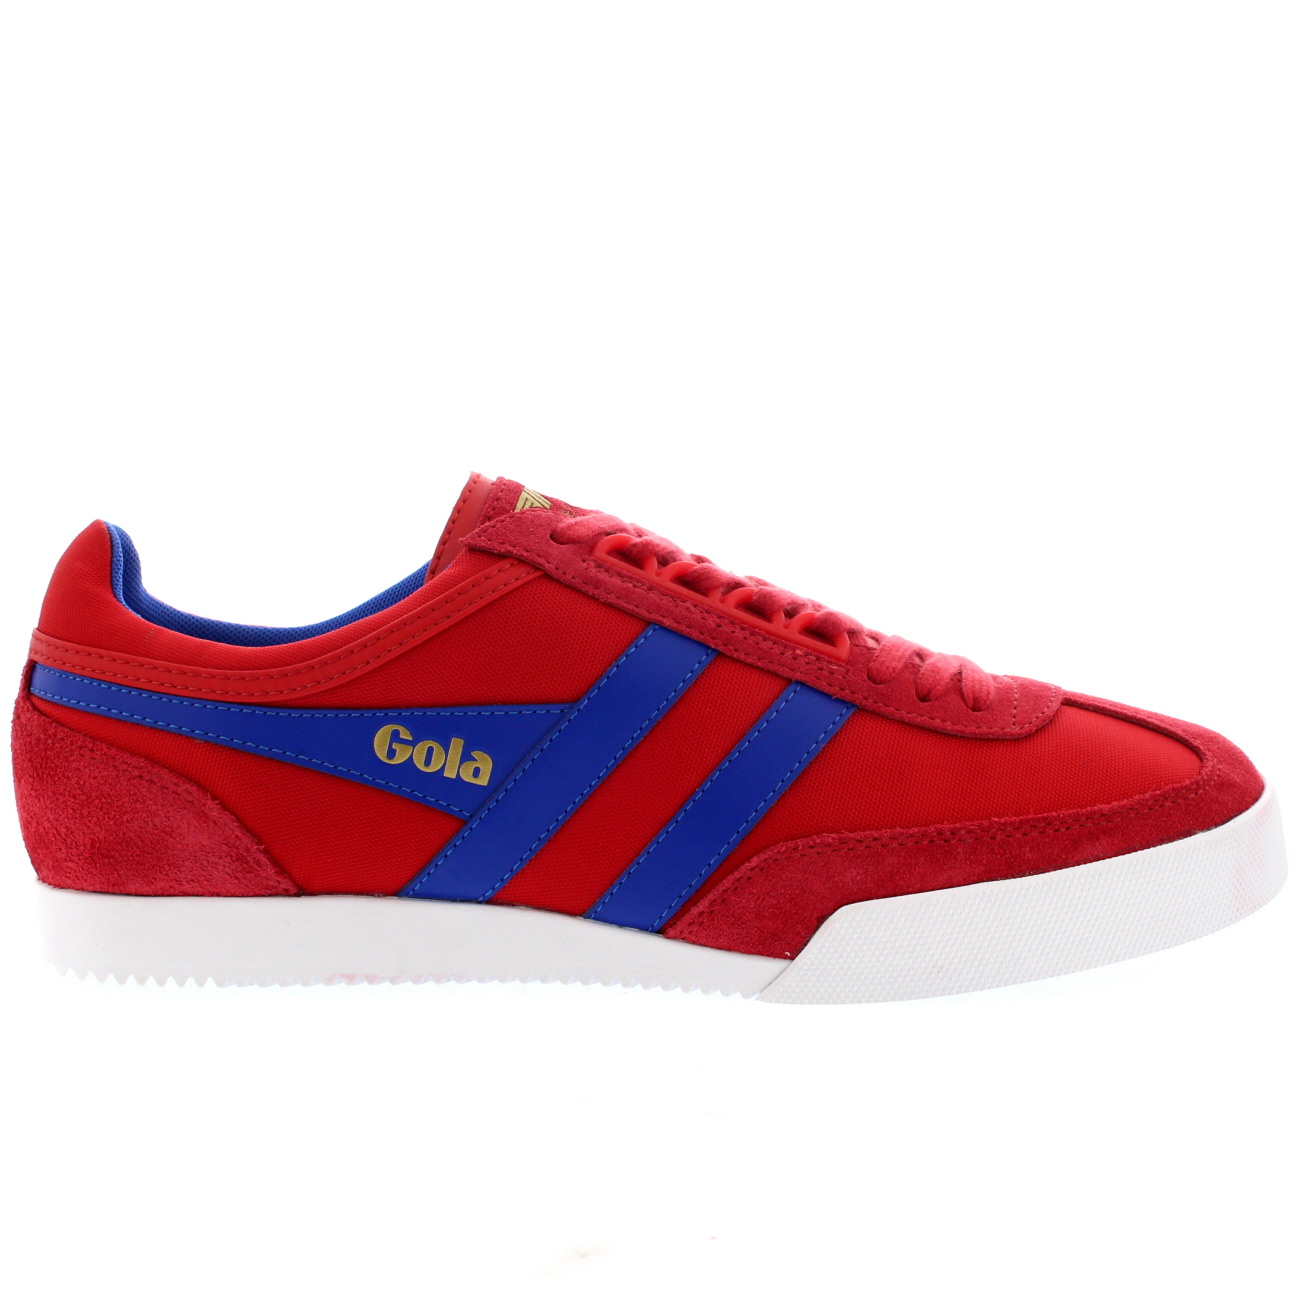 f99ea4cd9cb1 Ladies Gola Harrier Suede Lace Up Sporty Active Casual Retro Sneakers All  Sizes